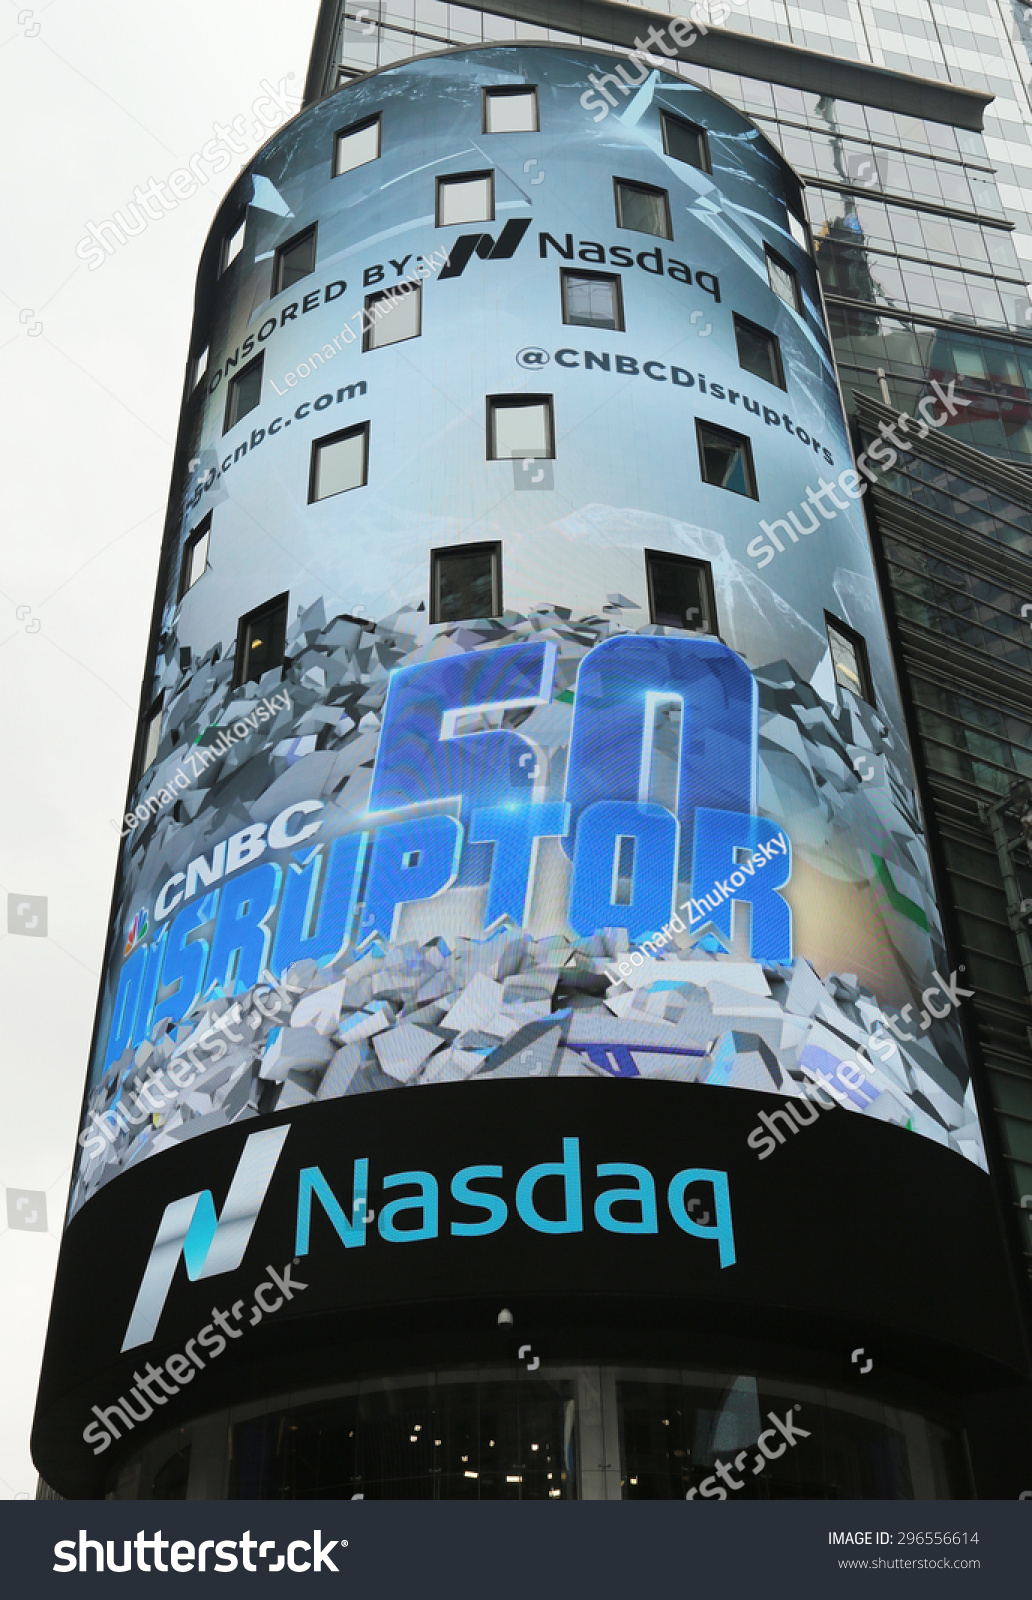 a comparison of the new york stock exchange nyse and nasdaq The new york stock exchange (nyse) is the world's largest stock exchange by market capitalization of its listed companies the nyse is located in new york city, usa there are a number of differences between the two stock exchanges.